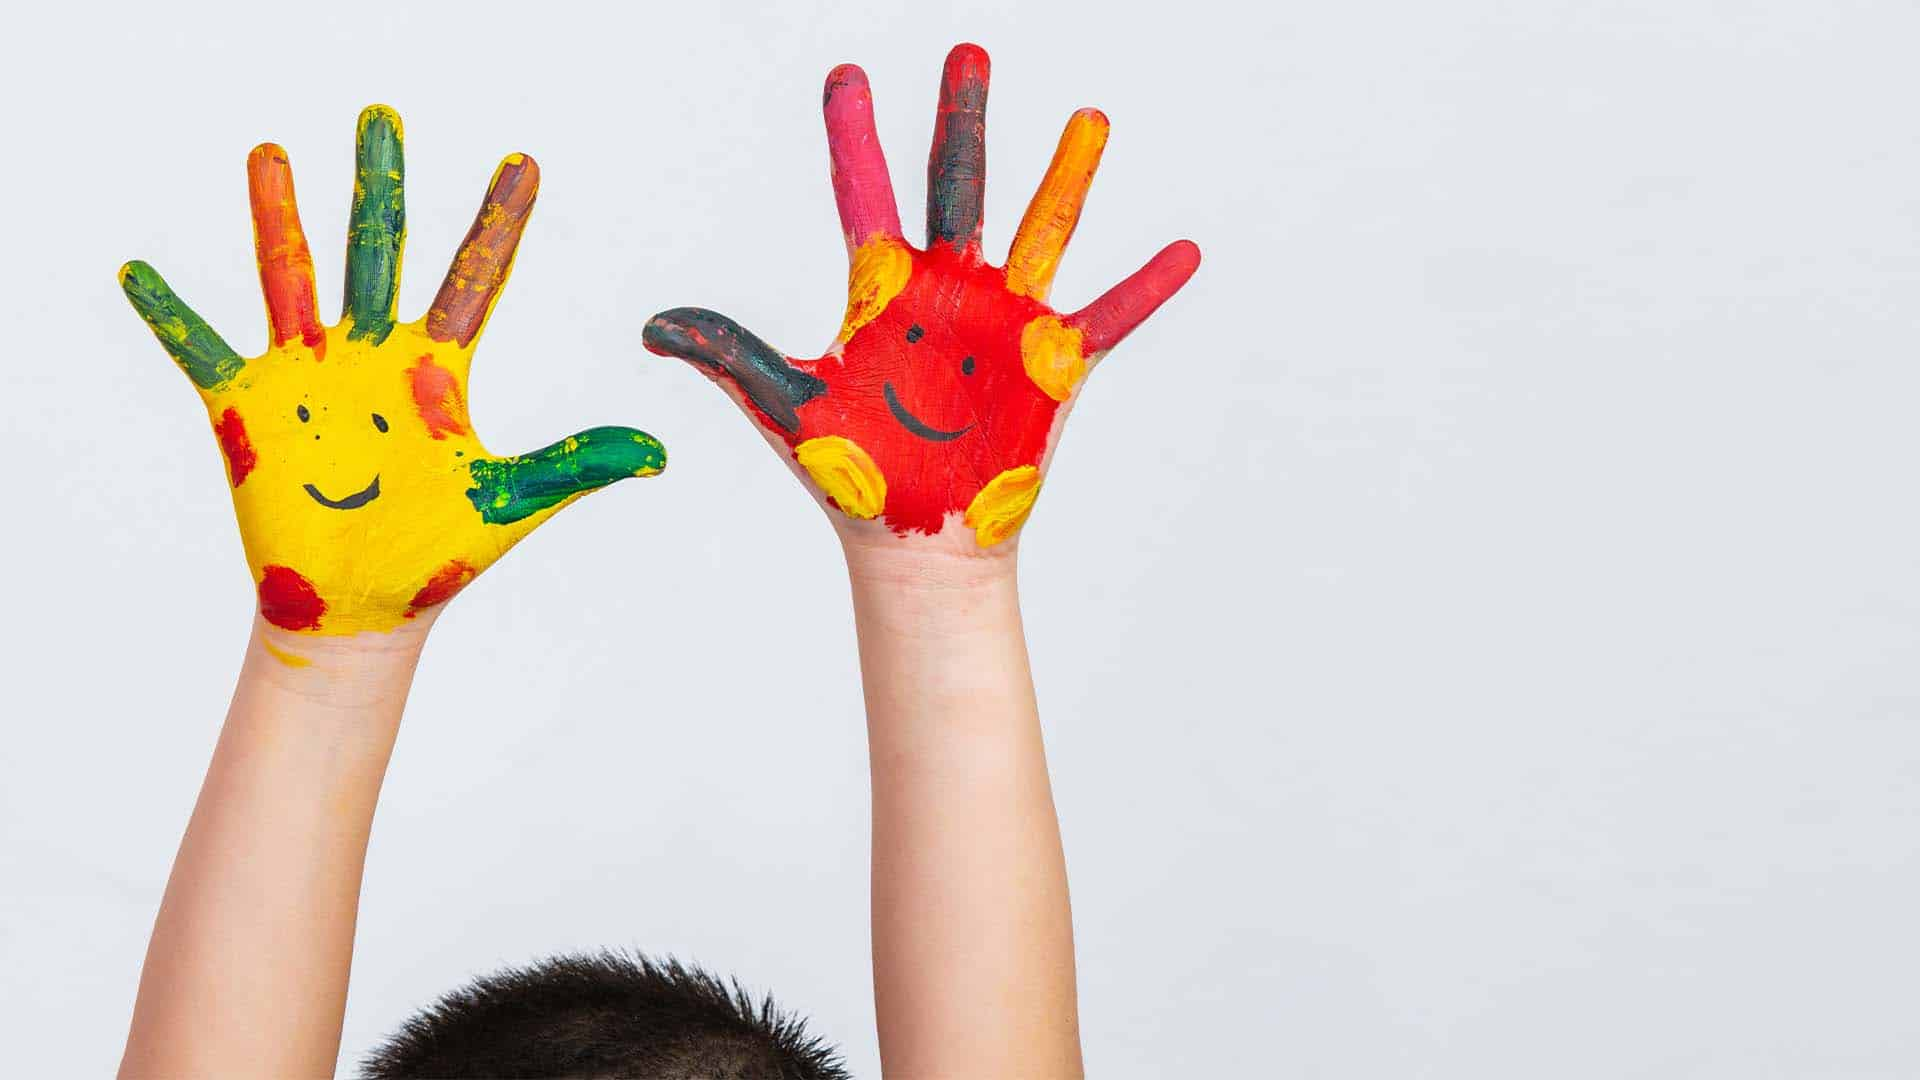 The hands of the child who smeared on the gray background.